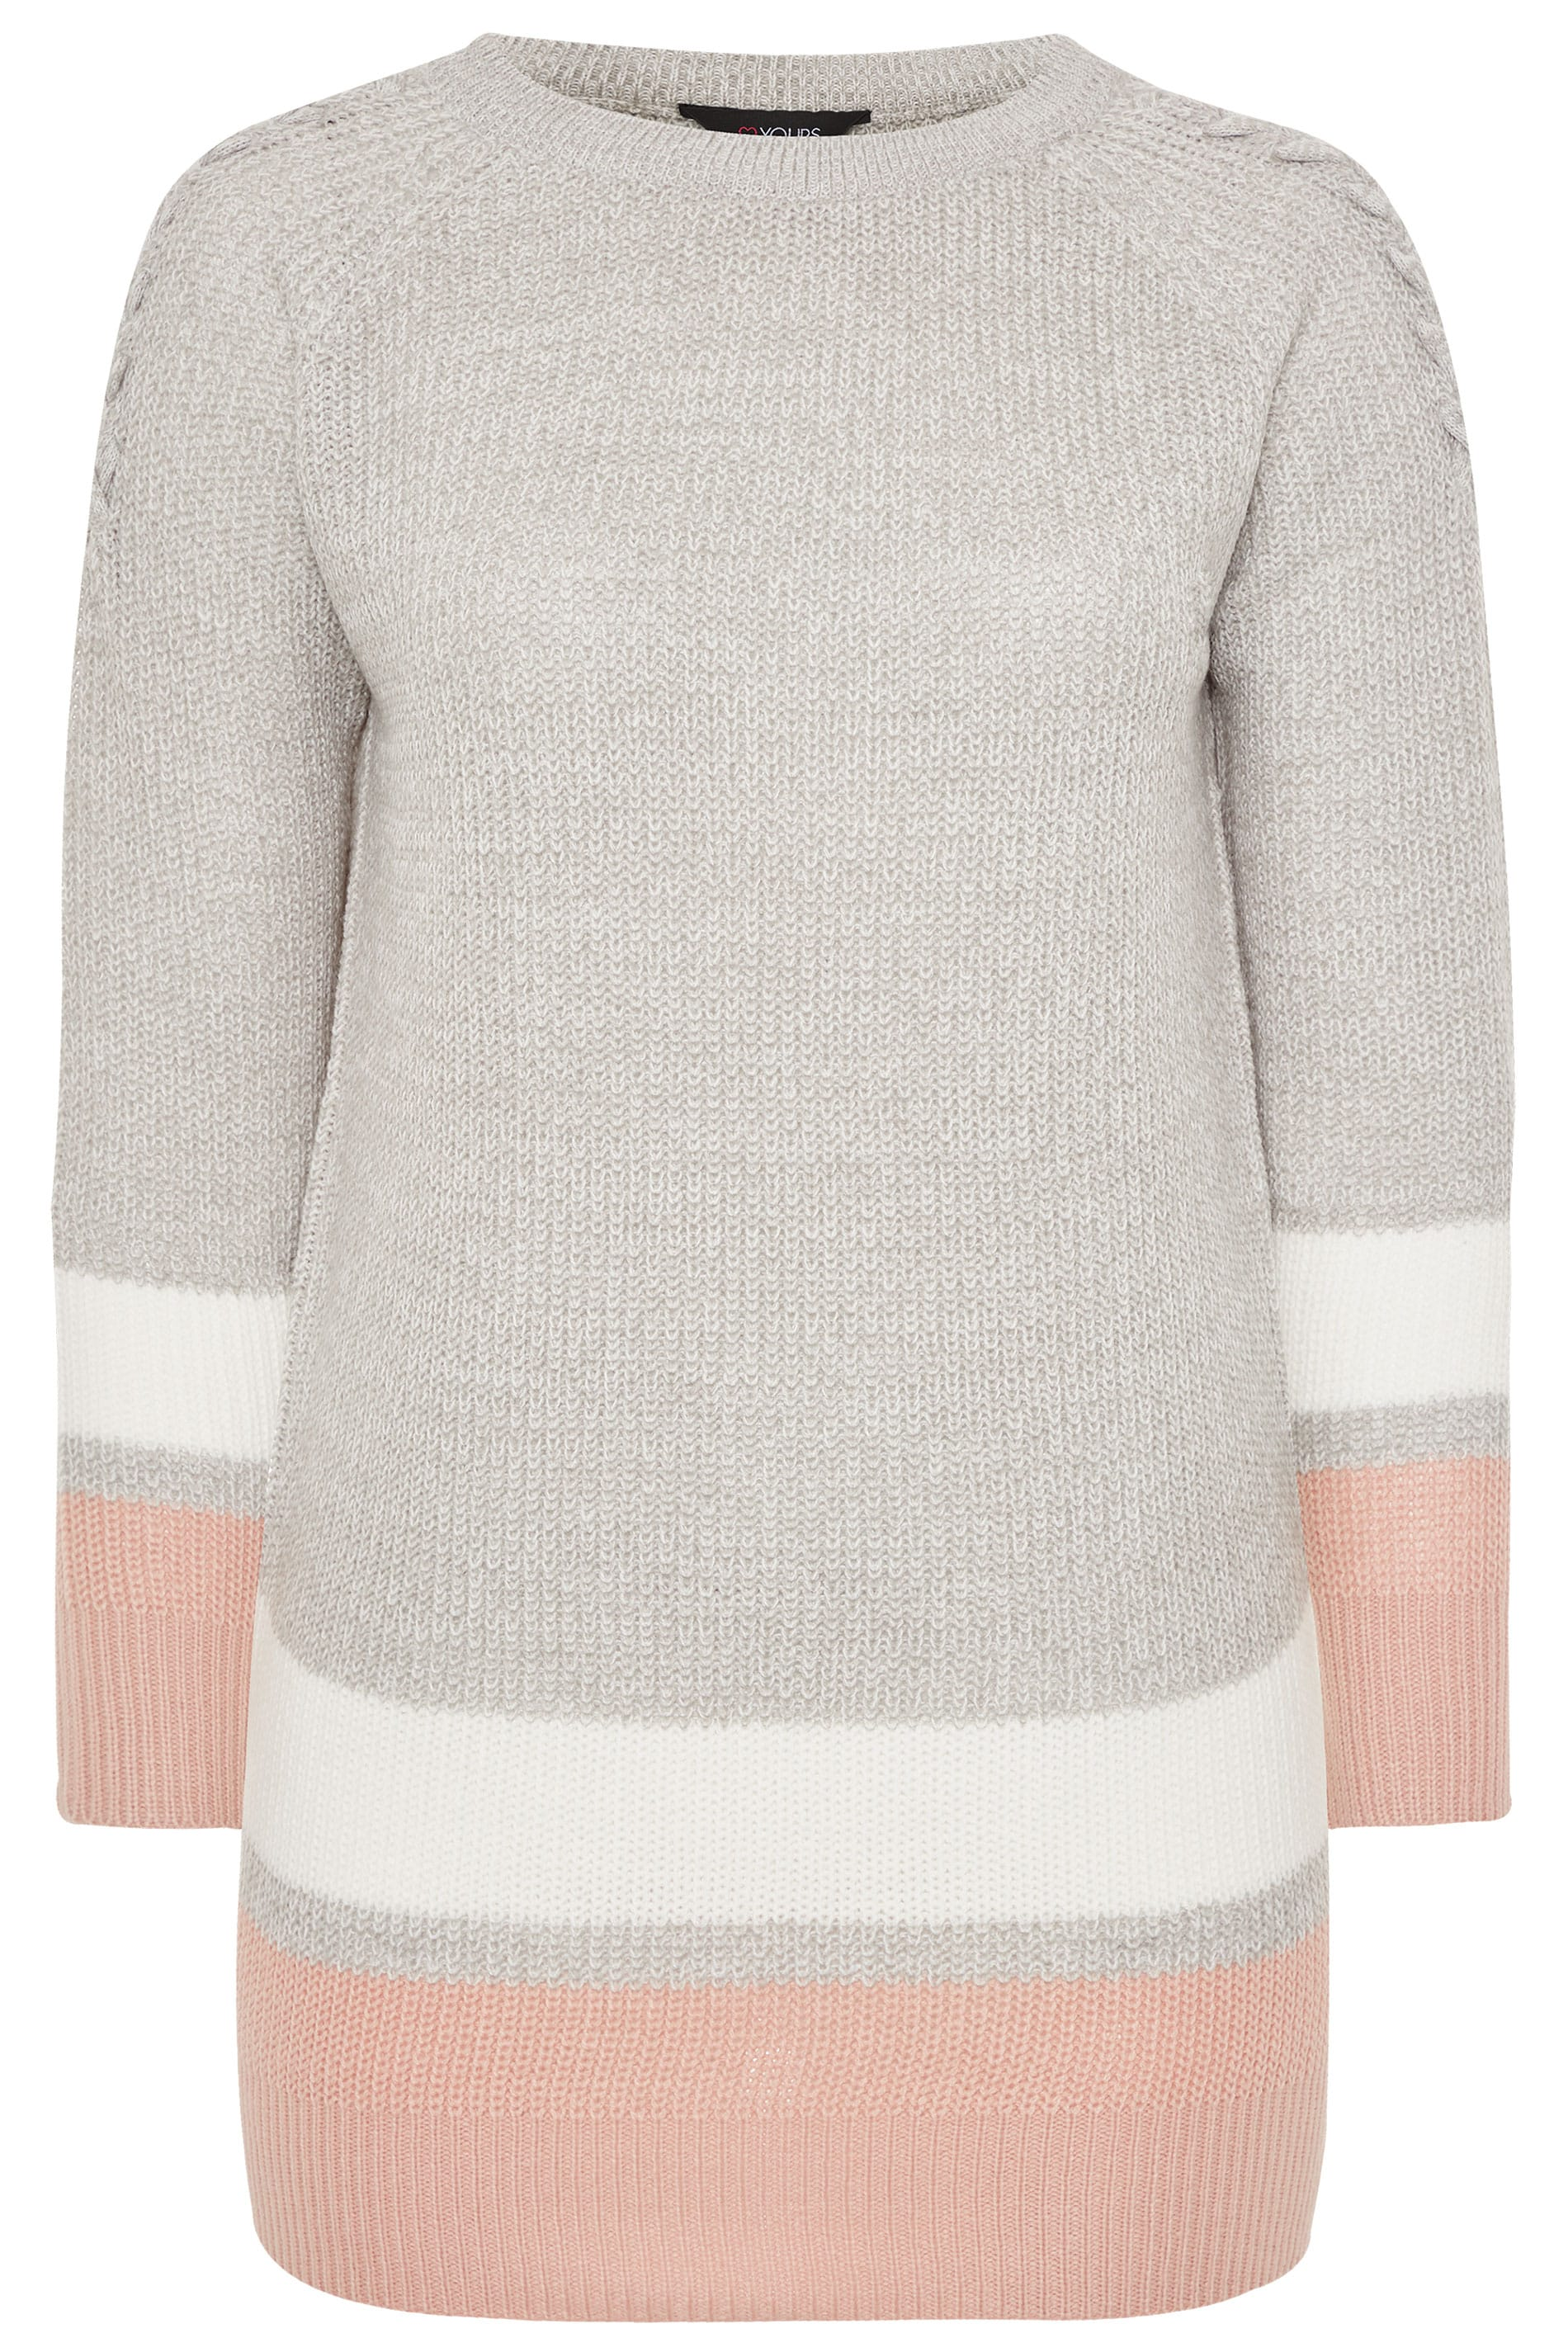 Yours Clothing Women/'s Plus Size Stripe Trims Knitted Jumper